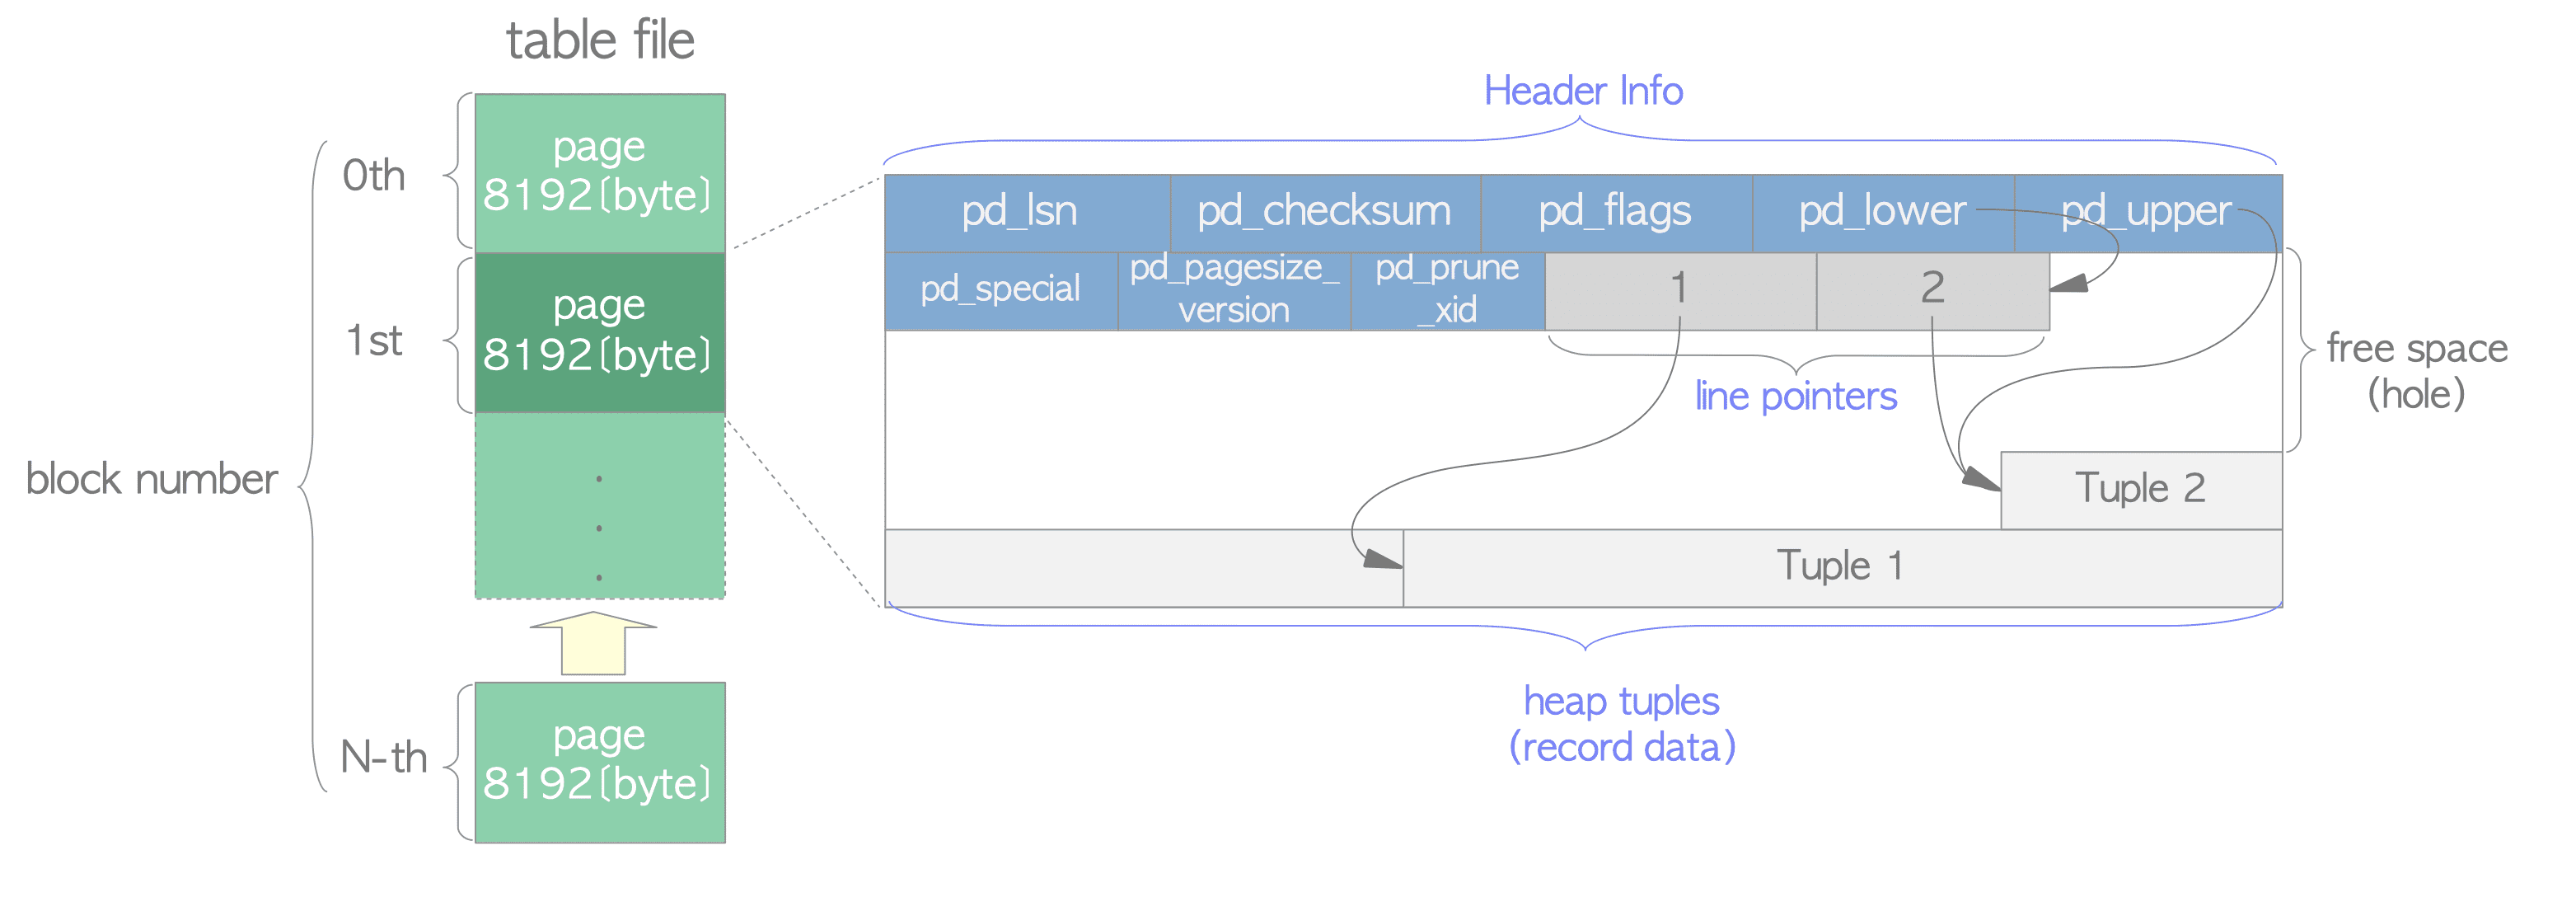 Heap table/Page